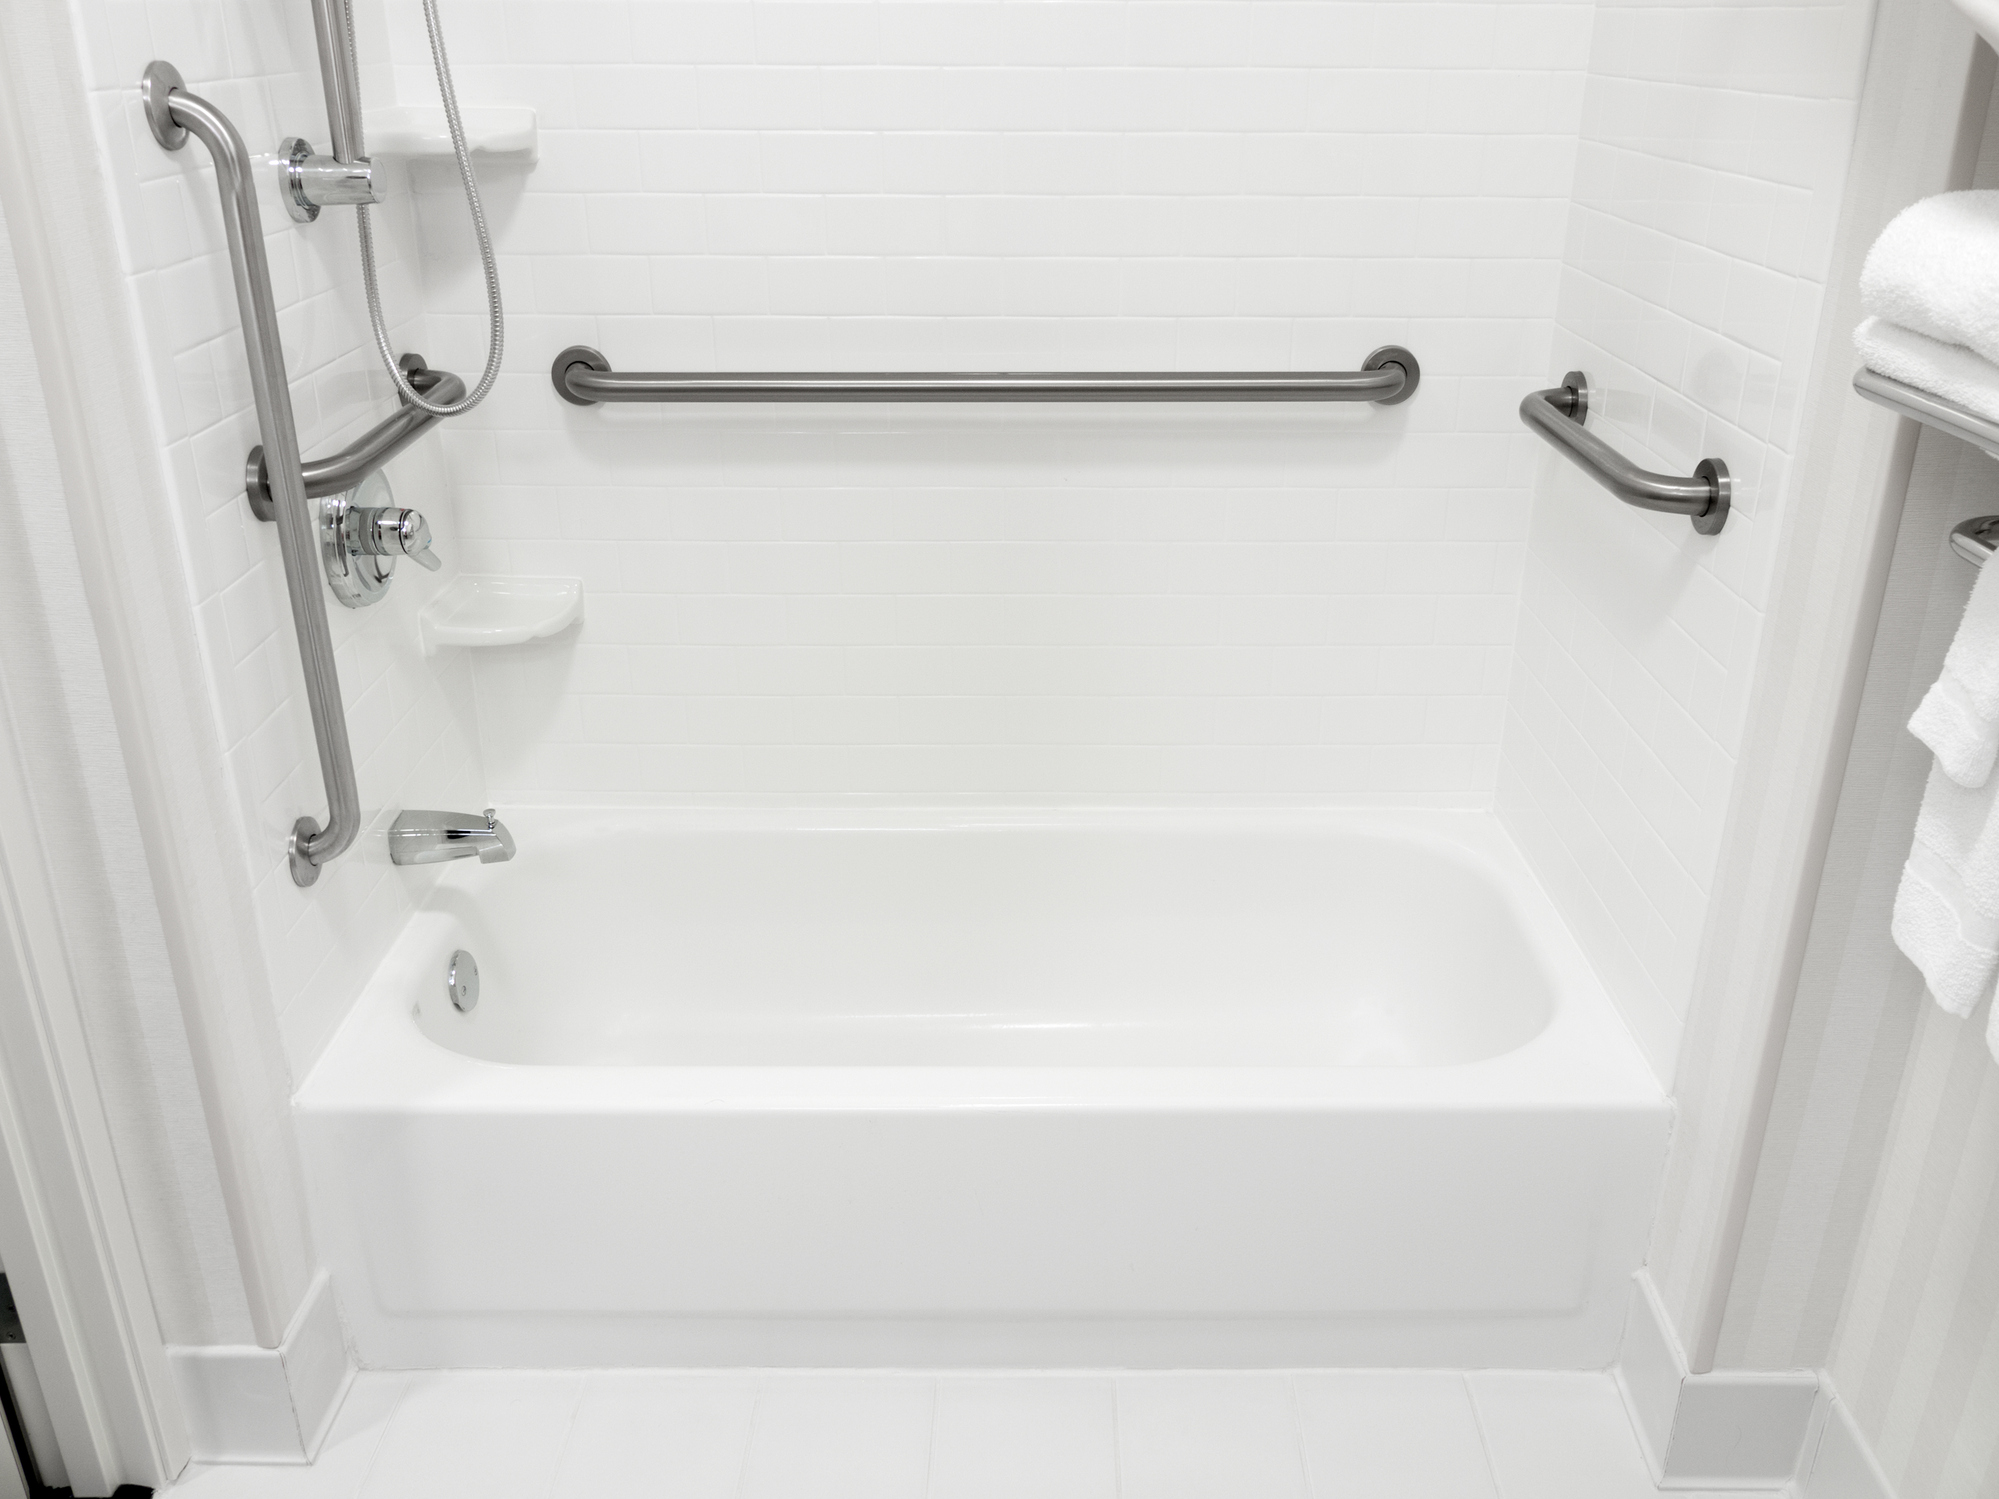 Grab bars for shower